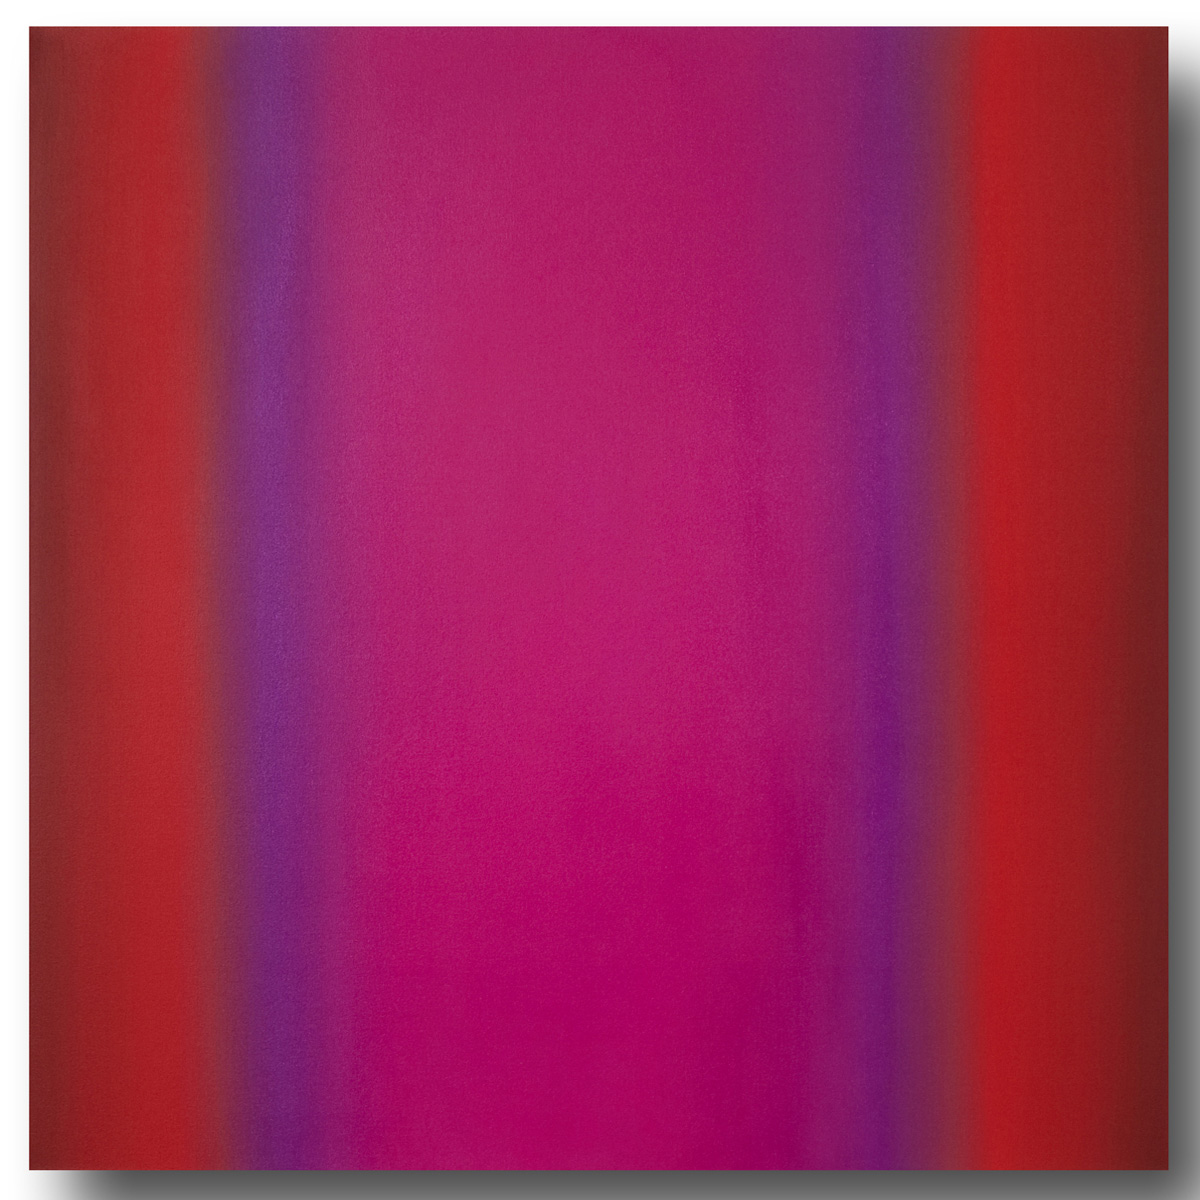 Mind's Eye Red Green 2-S4848 (Magenta Violet), Sense Certainty Series, 2014, oil on canvas on custom beveled stretcher, 48 x 48 in. (122 x 122 cm.)